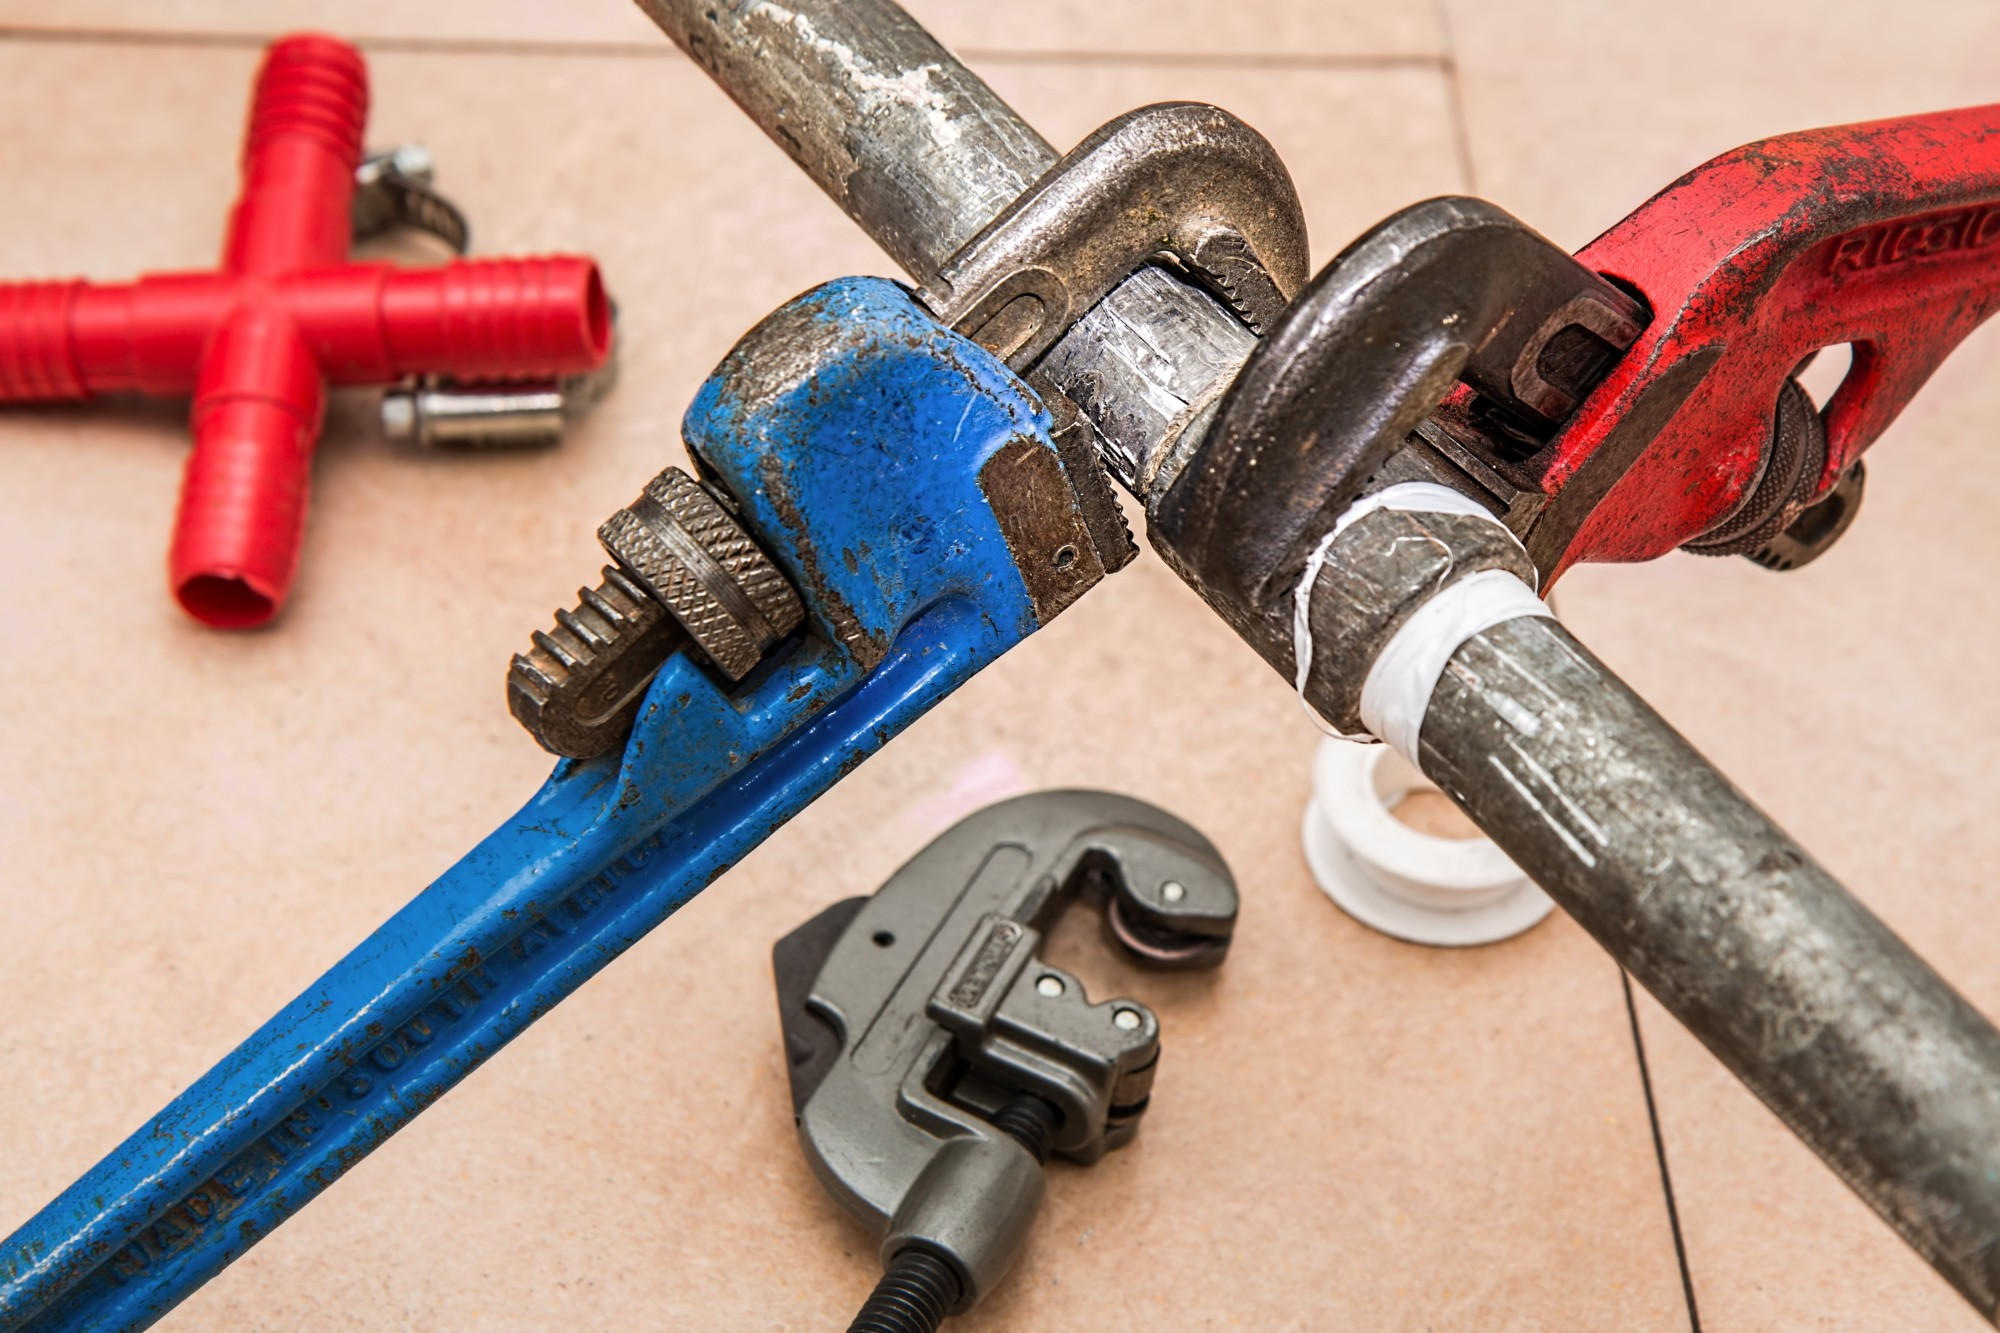 DIY Don't! 7 Signs You've Got a Major Plumbing Problem